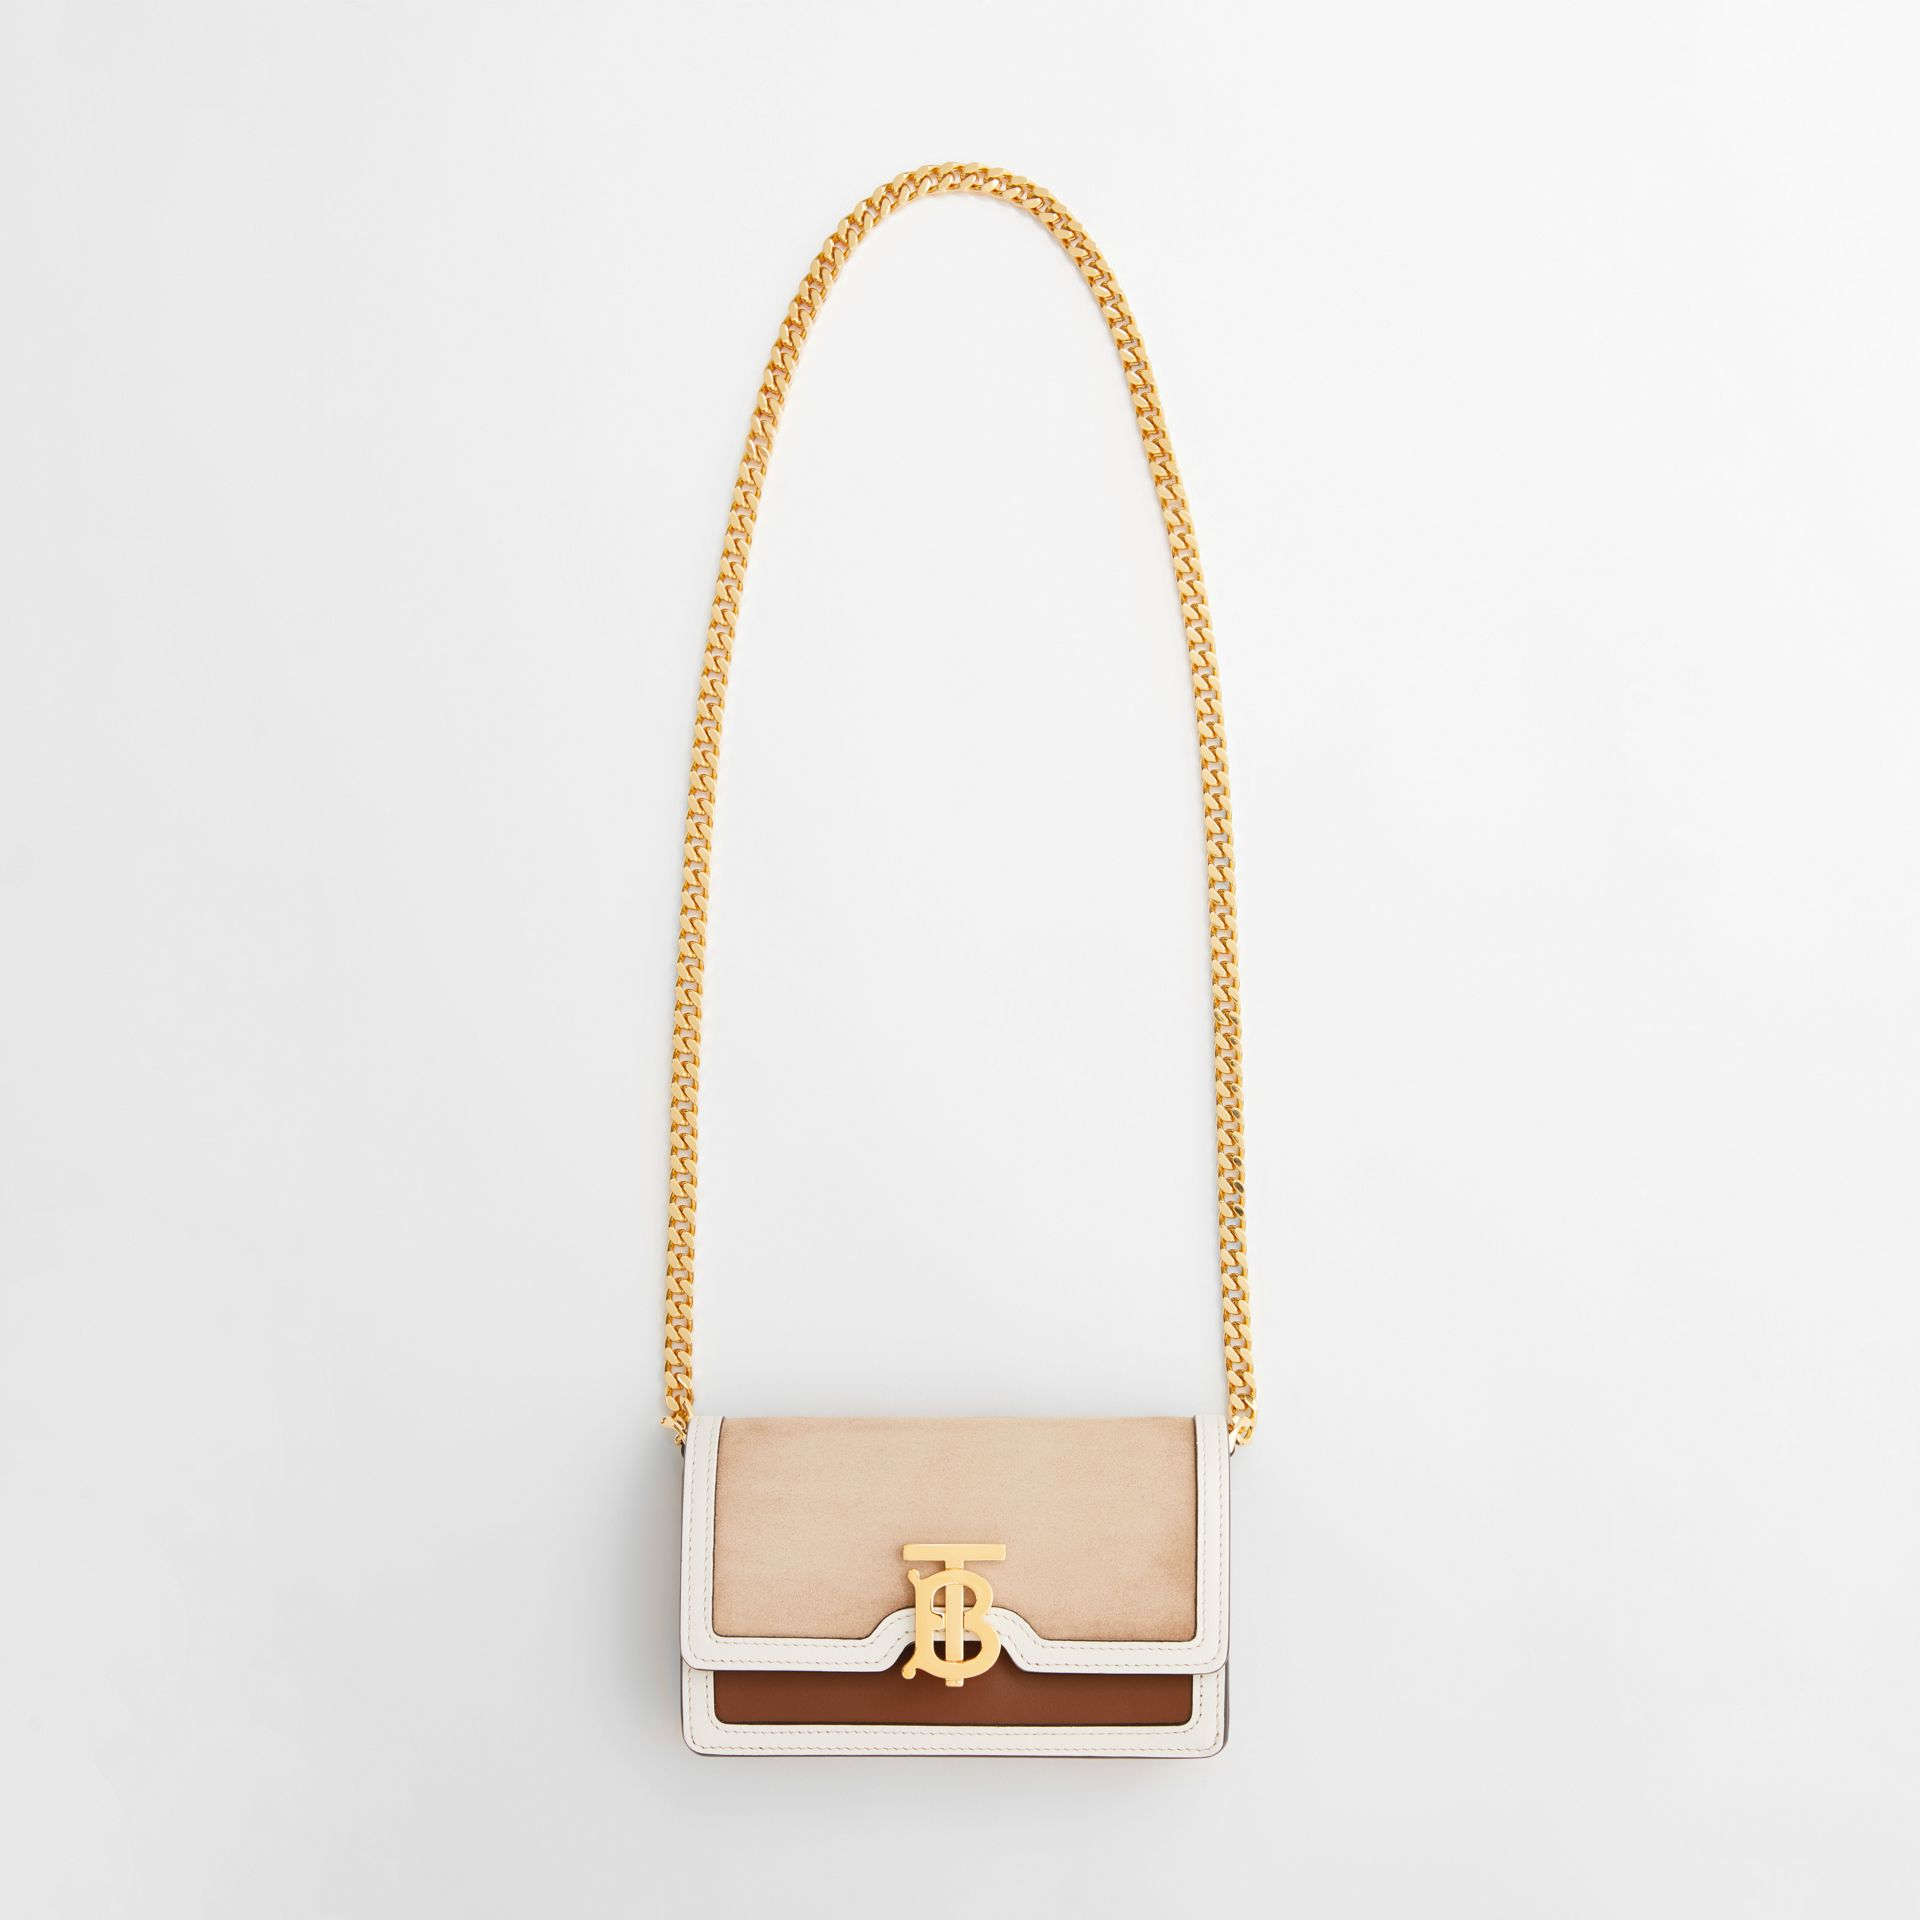 Mini Suede and Two-tone Leather Shoulder Bag in Biscuit - Women | Burberry - gallery image 2